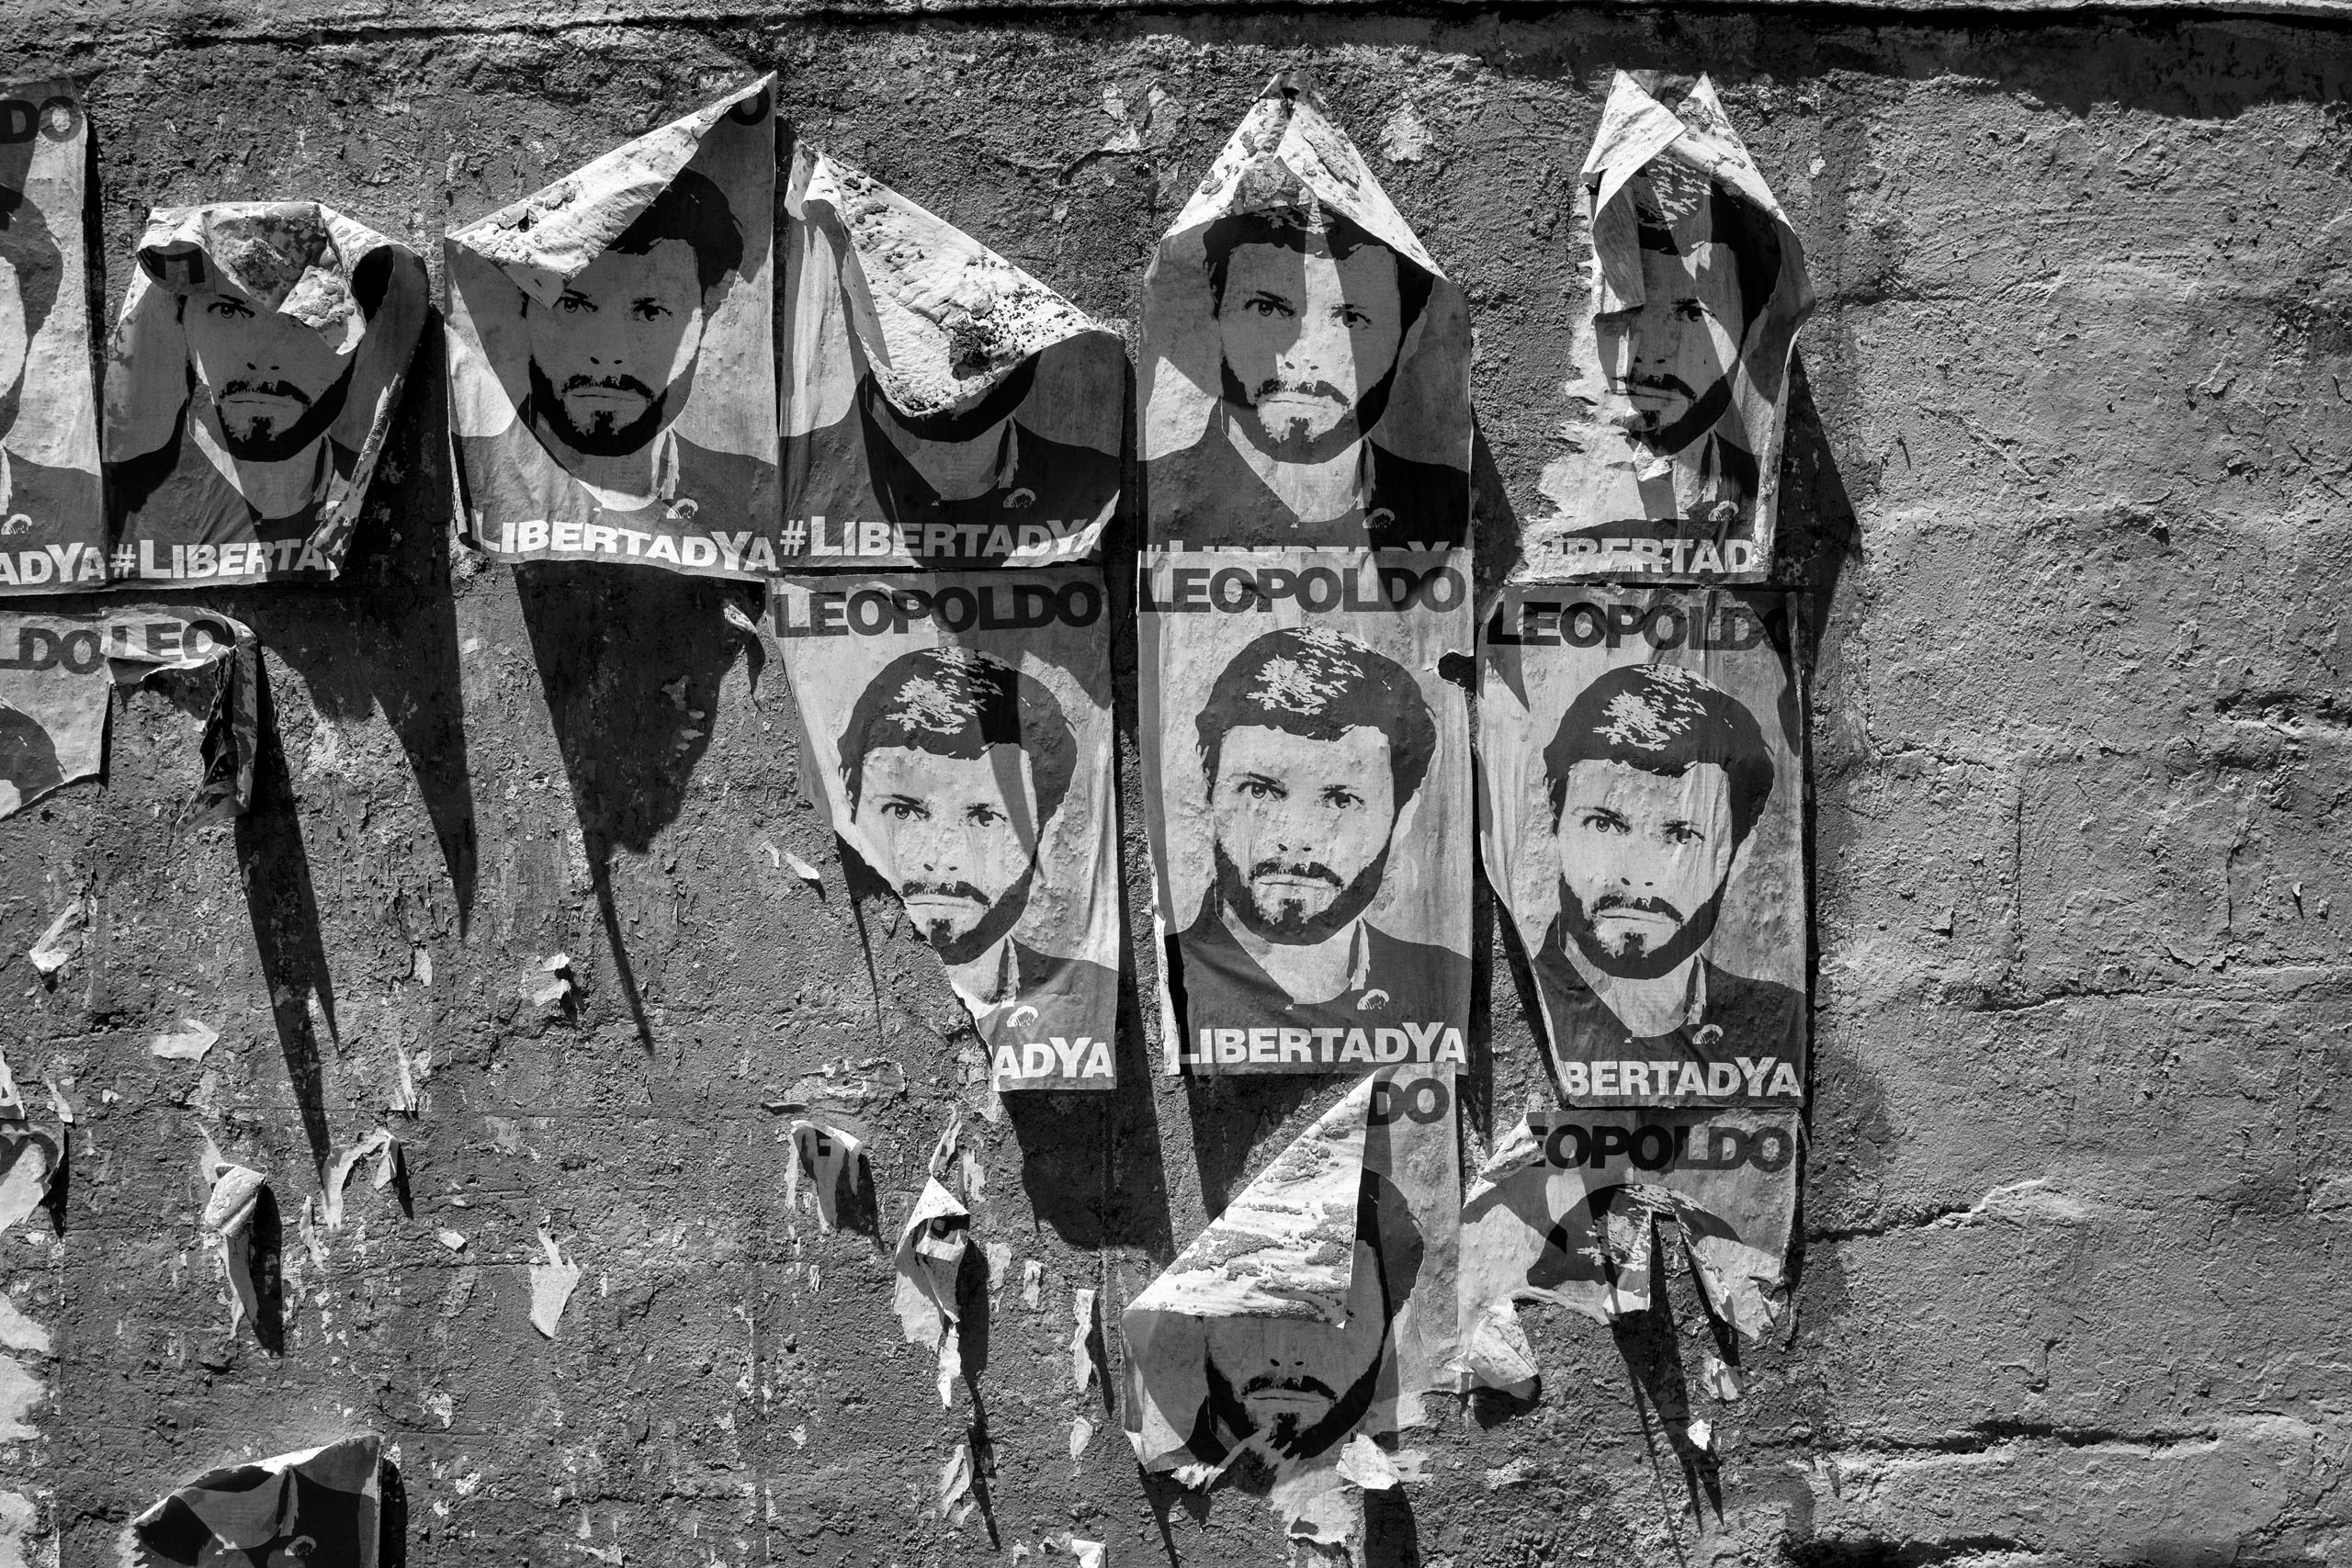 Posters of political prisoner Leopoldo Lopez hang on a wall in Caracas. The Venezuelan government of President Nicolas Maduro has been widely condemned for its treatment of the political opposition, including most notably Leopoldo Lopez, leader of the opposition, who is serving a 14-year sentence,  June, 2016.